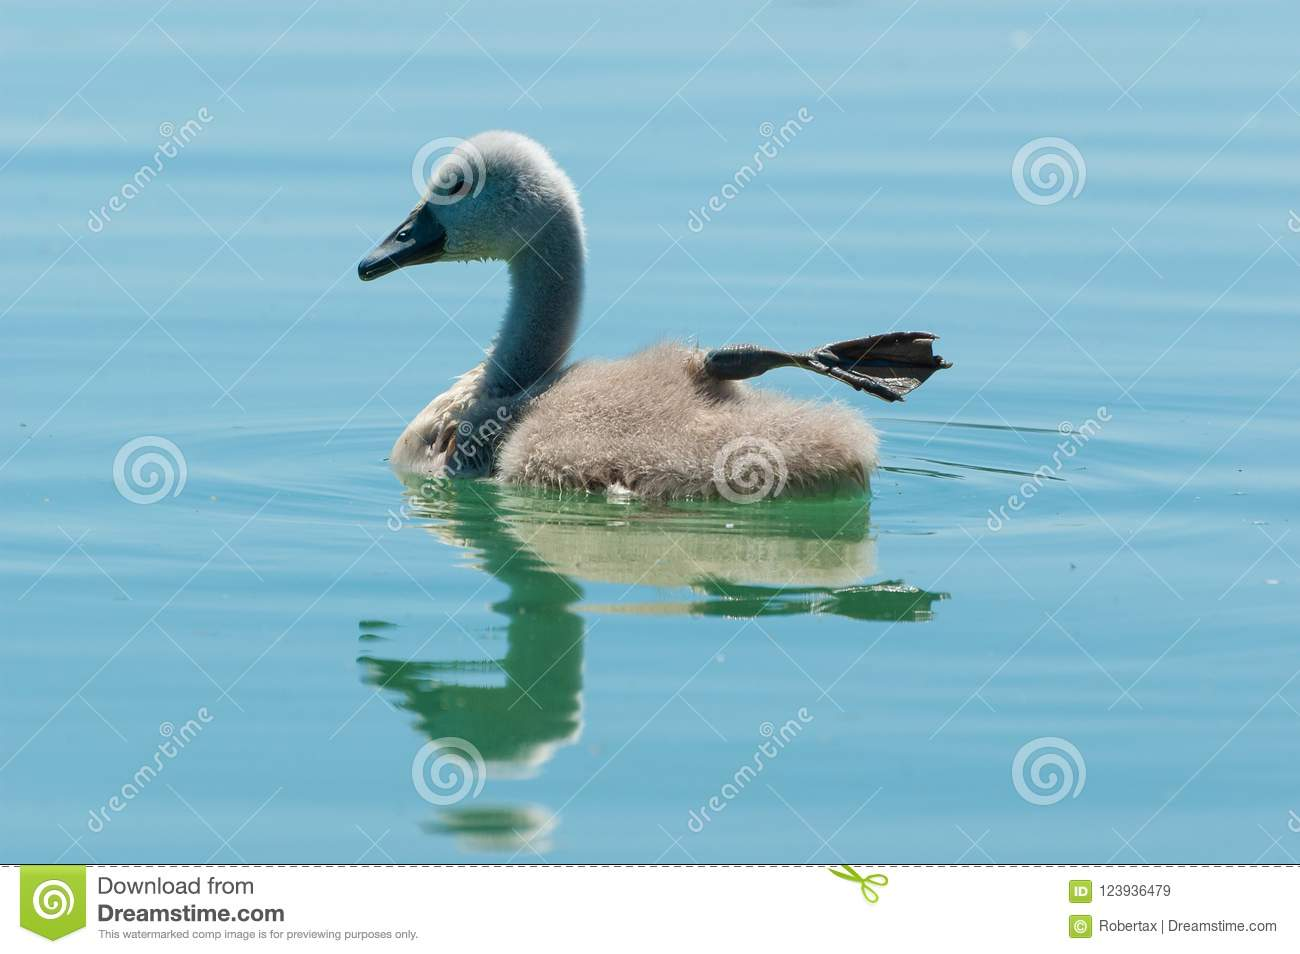 Young swan swimming in the calm water with visible reflection